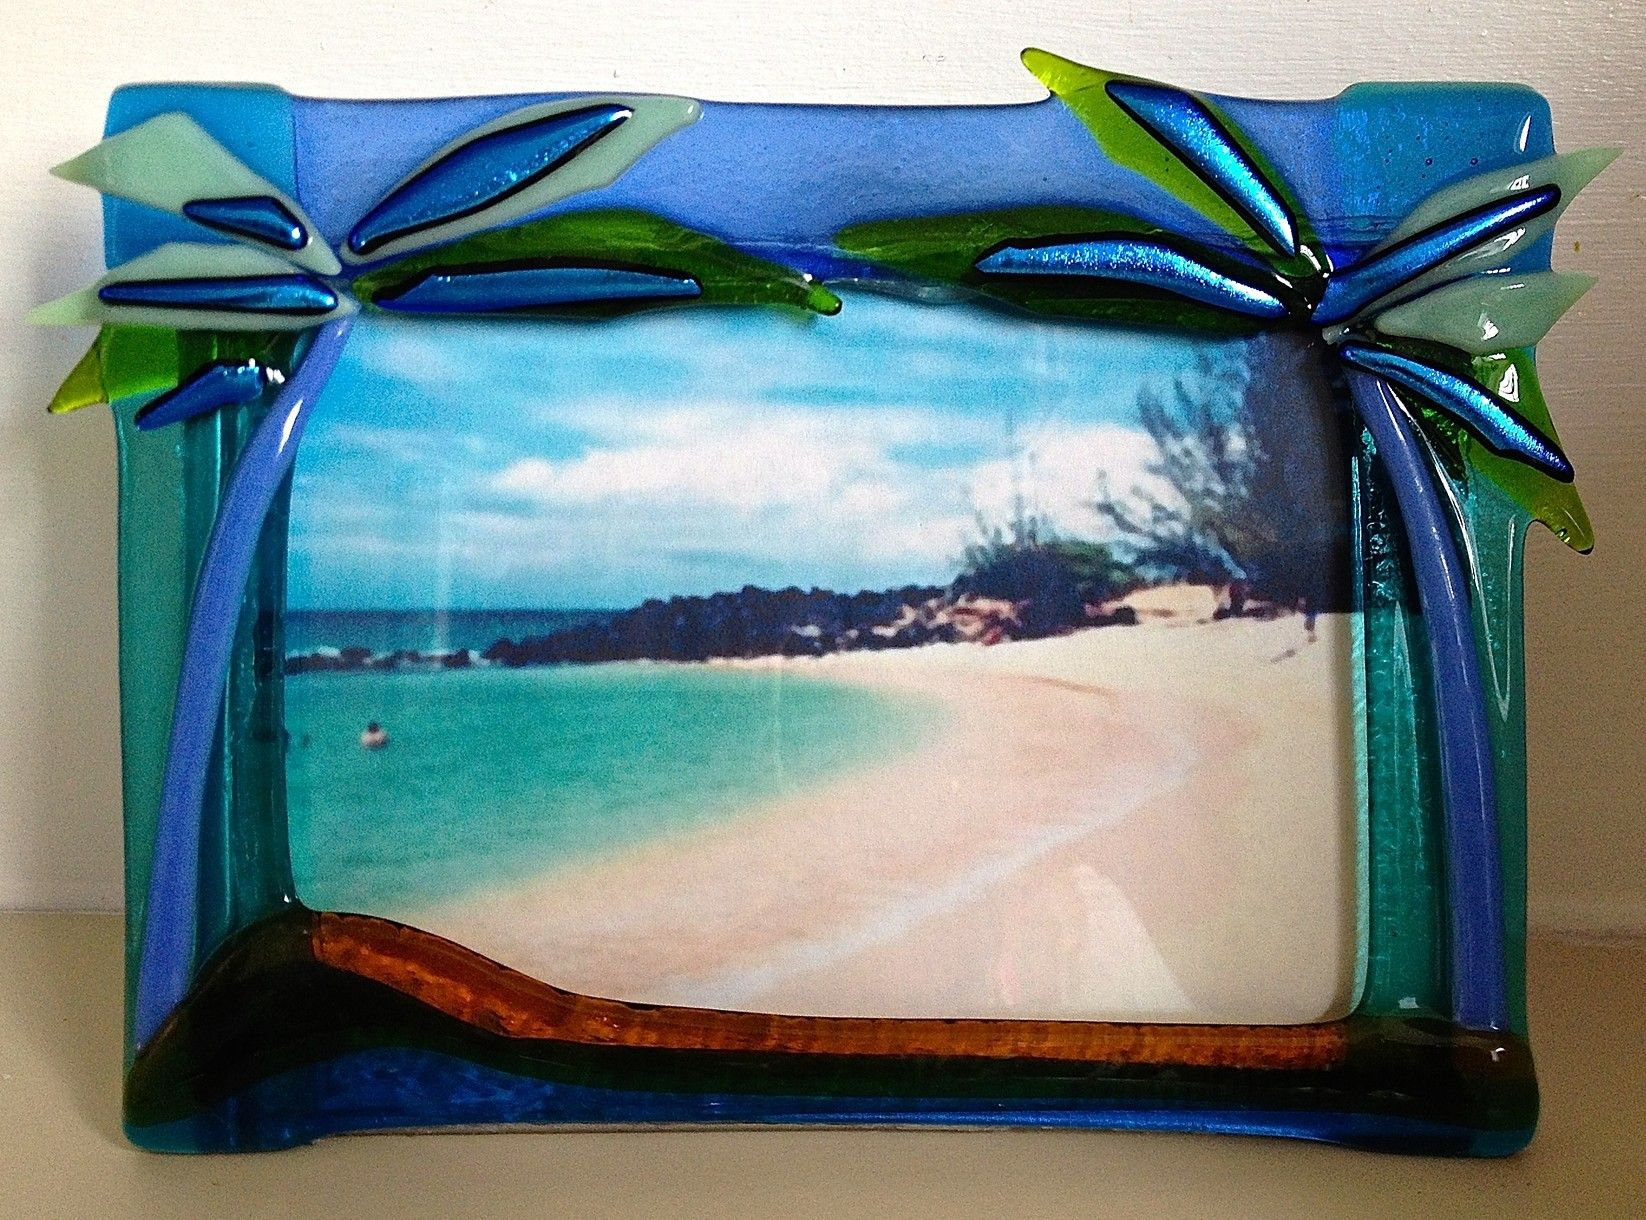 Captivating Key West Picture Frame Details: 5x7 Vertical Or Horizontal